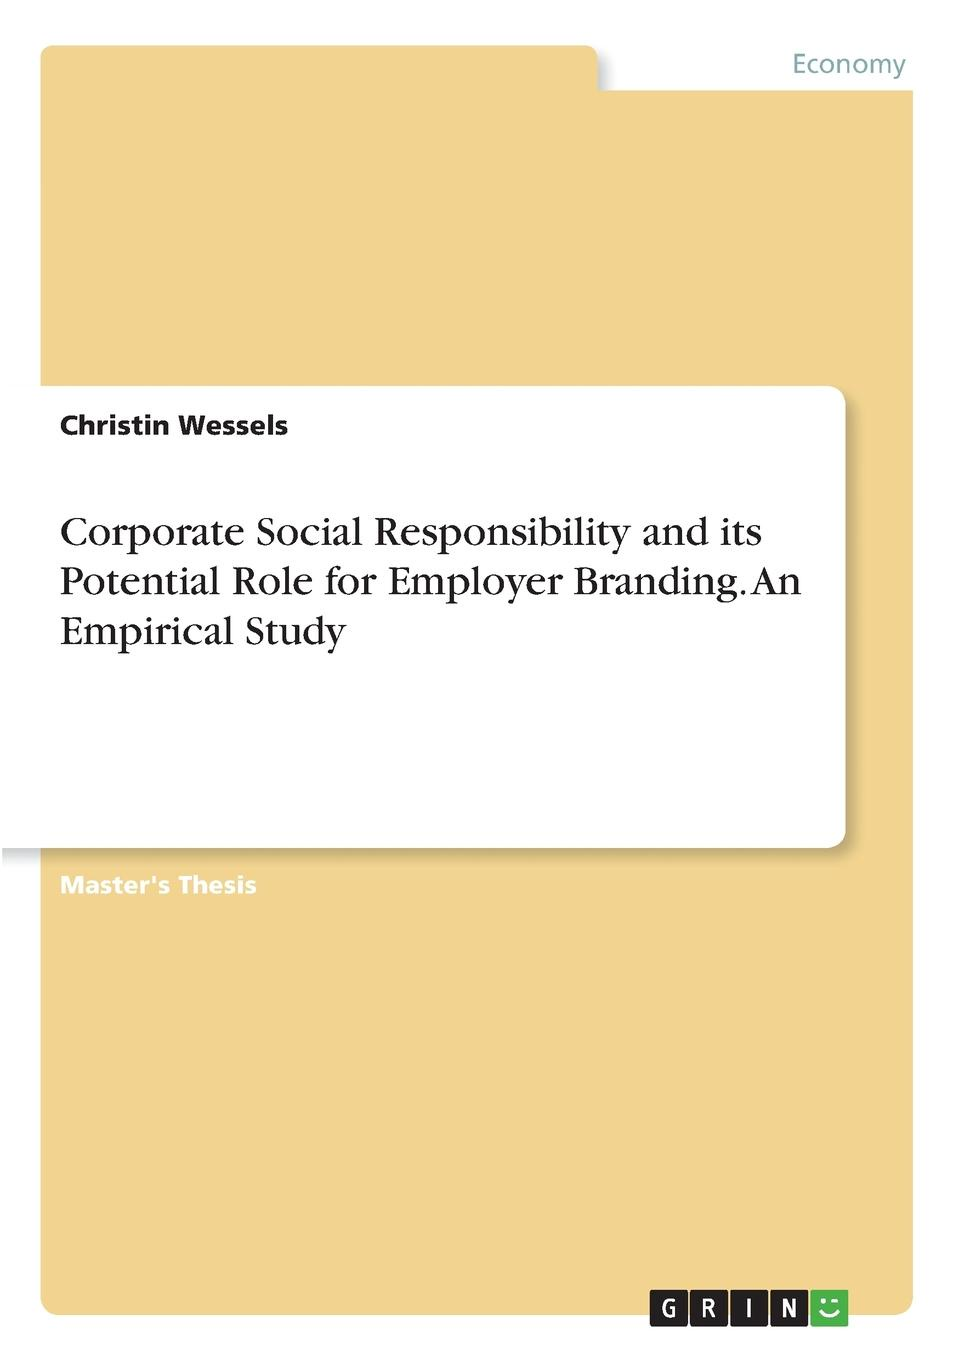 Christin Wessels Corporate Social Responsibility and its Potential Role for Employer Branding. An Empirical Study richard mosley employer branding for dummies